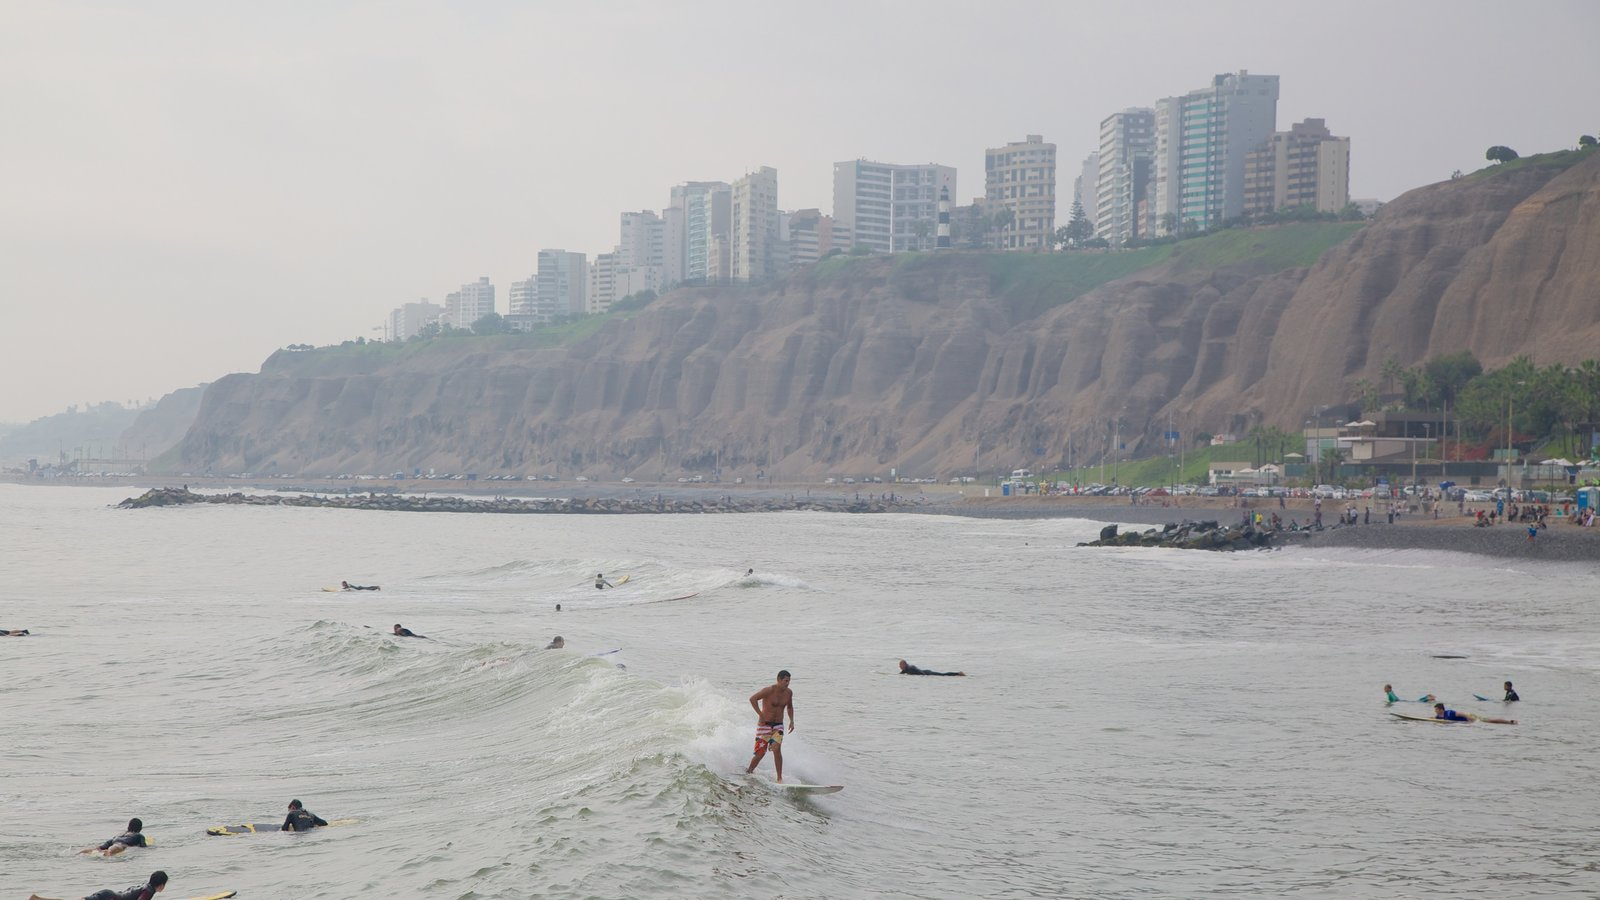 Lima showing surf, surfing and general coastal views